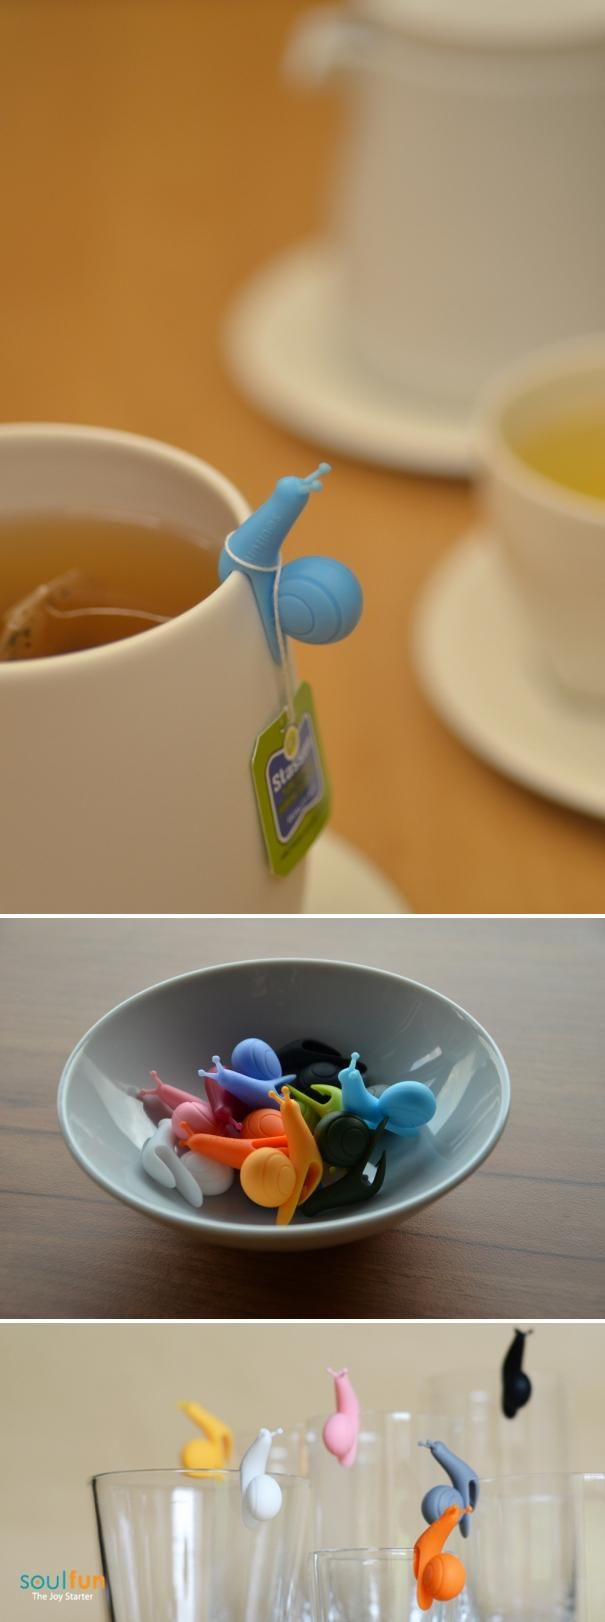 jolis escargots pour tenir les sachets de thé - Snail tea bag holders // adorably awesome :) #product_design